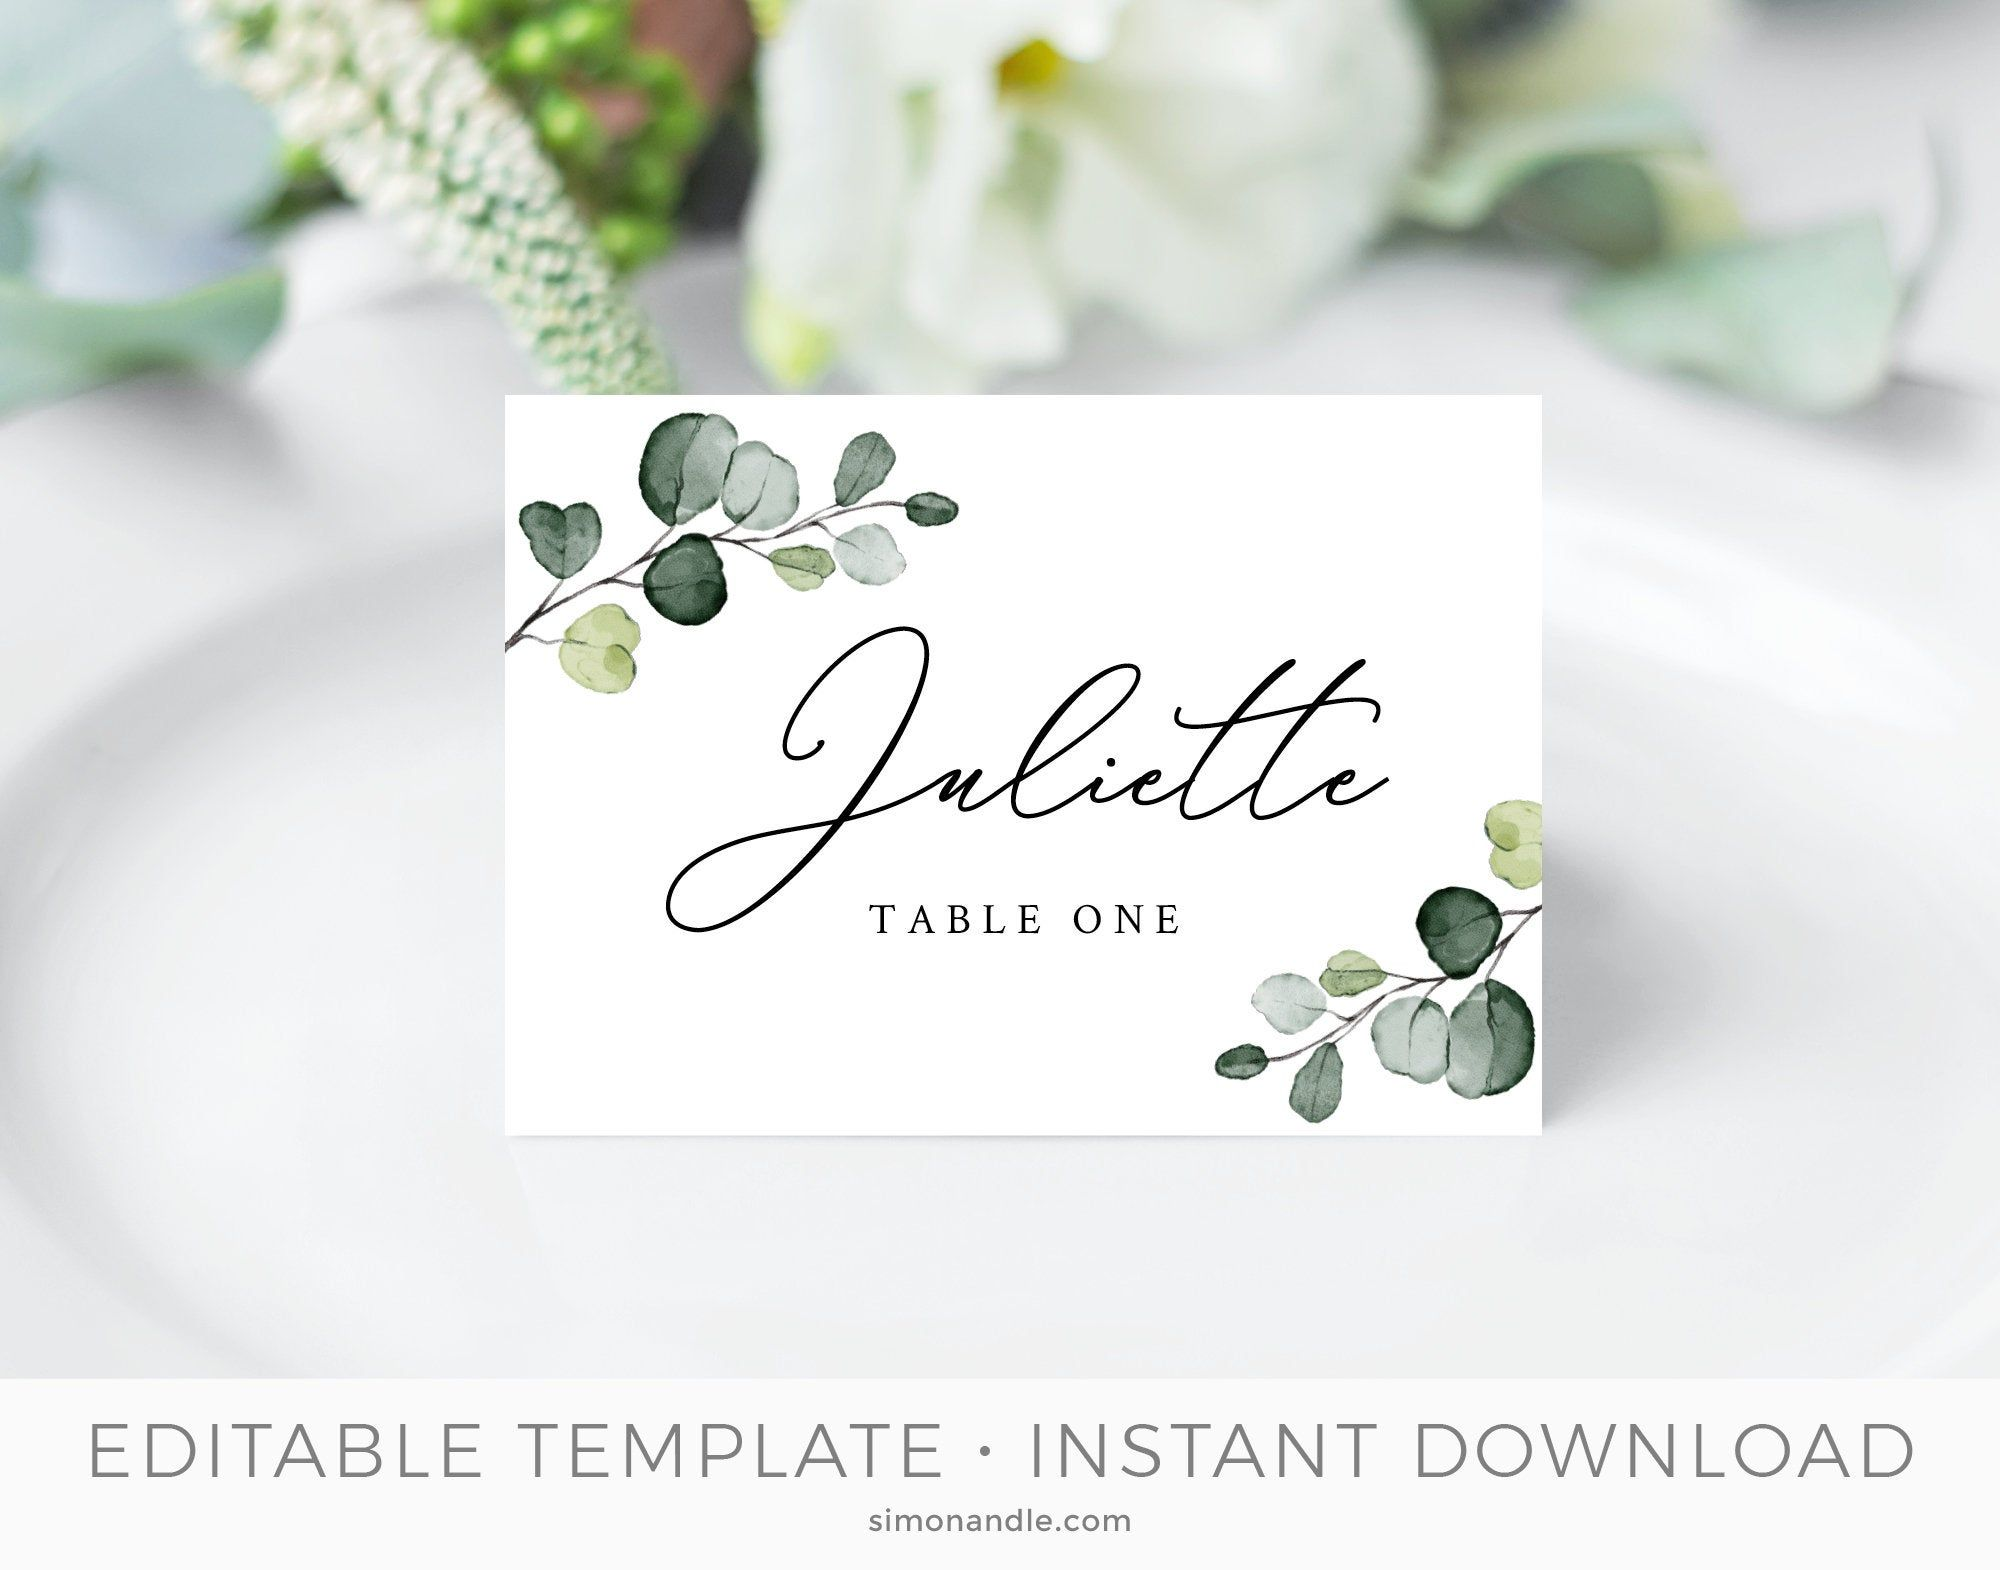 Rustic Place Cards Template Rustic Tent Cards Rustic Wedding Greenery Place Card Boho Place Cards Editable Templett Instant Download Rustic Place Cards Tent Cards Save The Date Cards